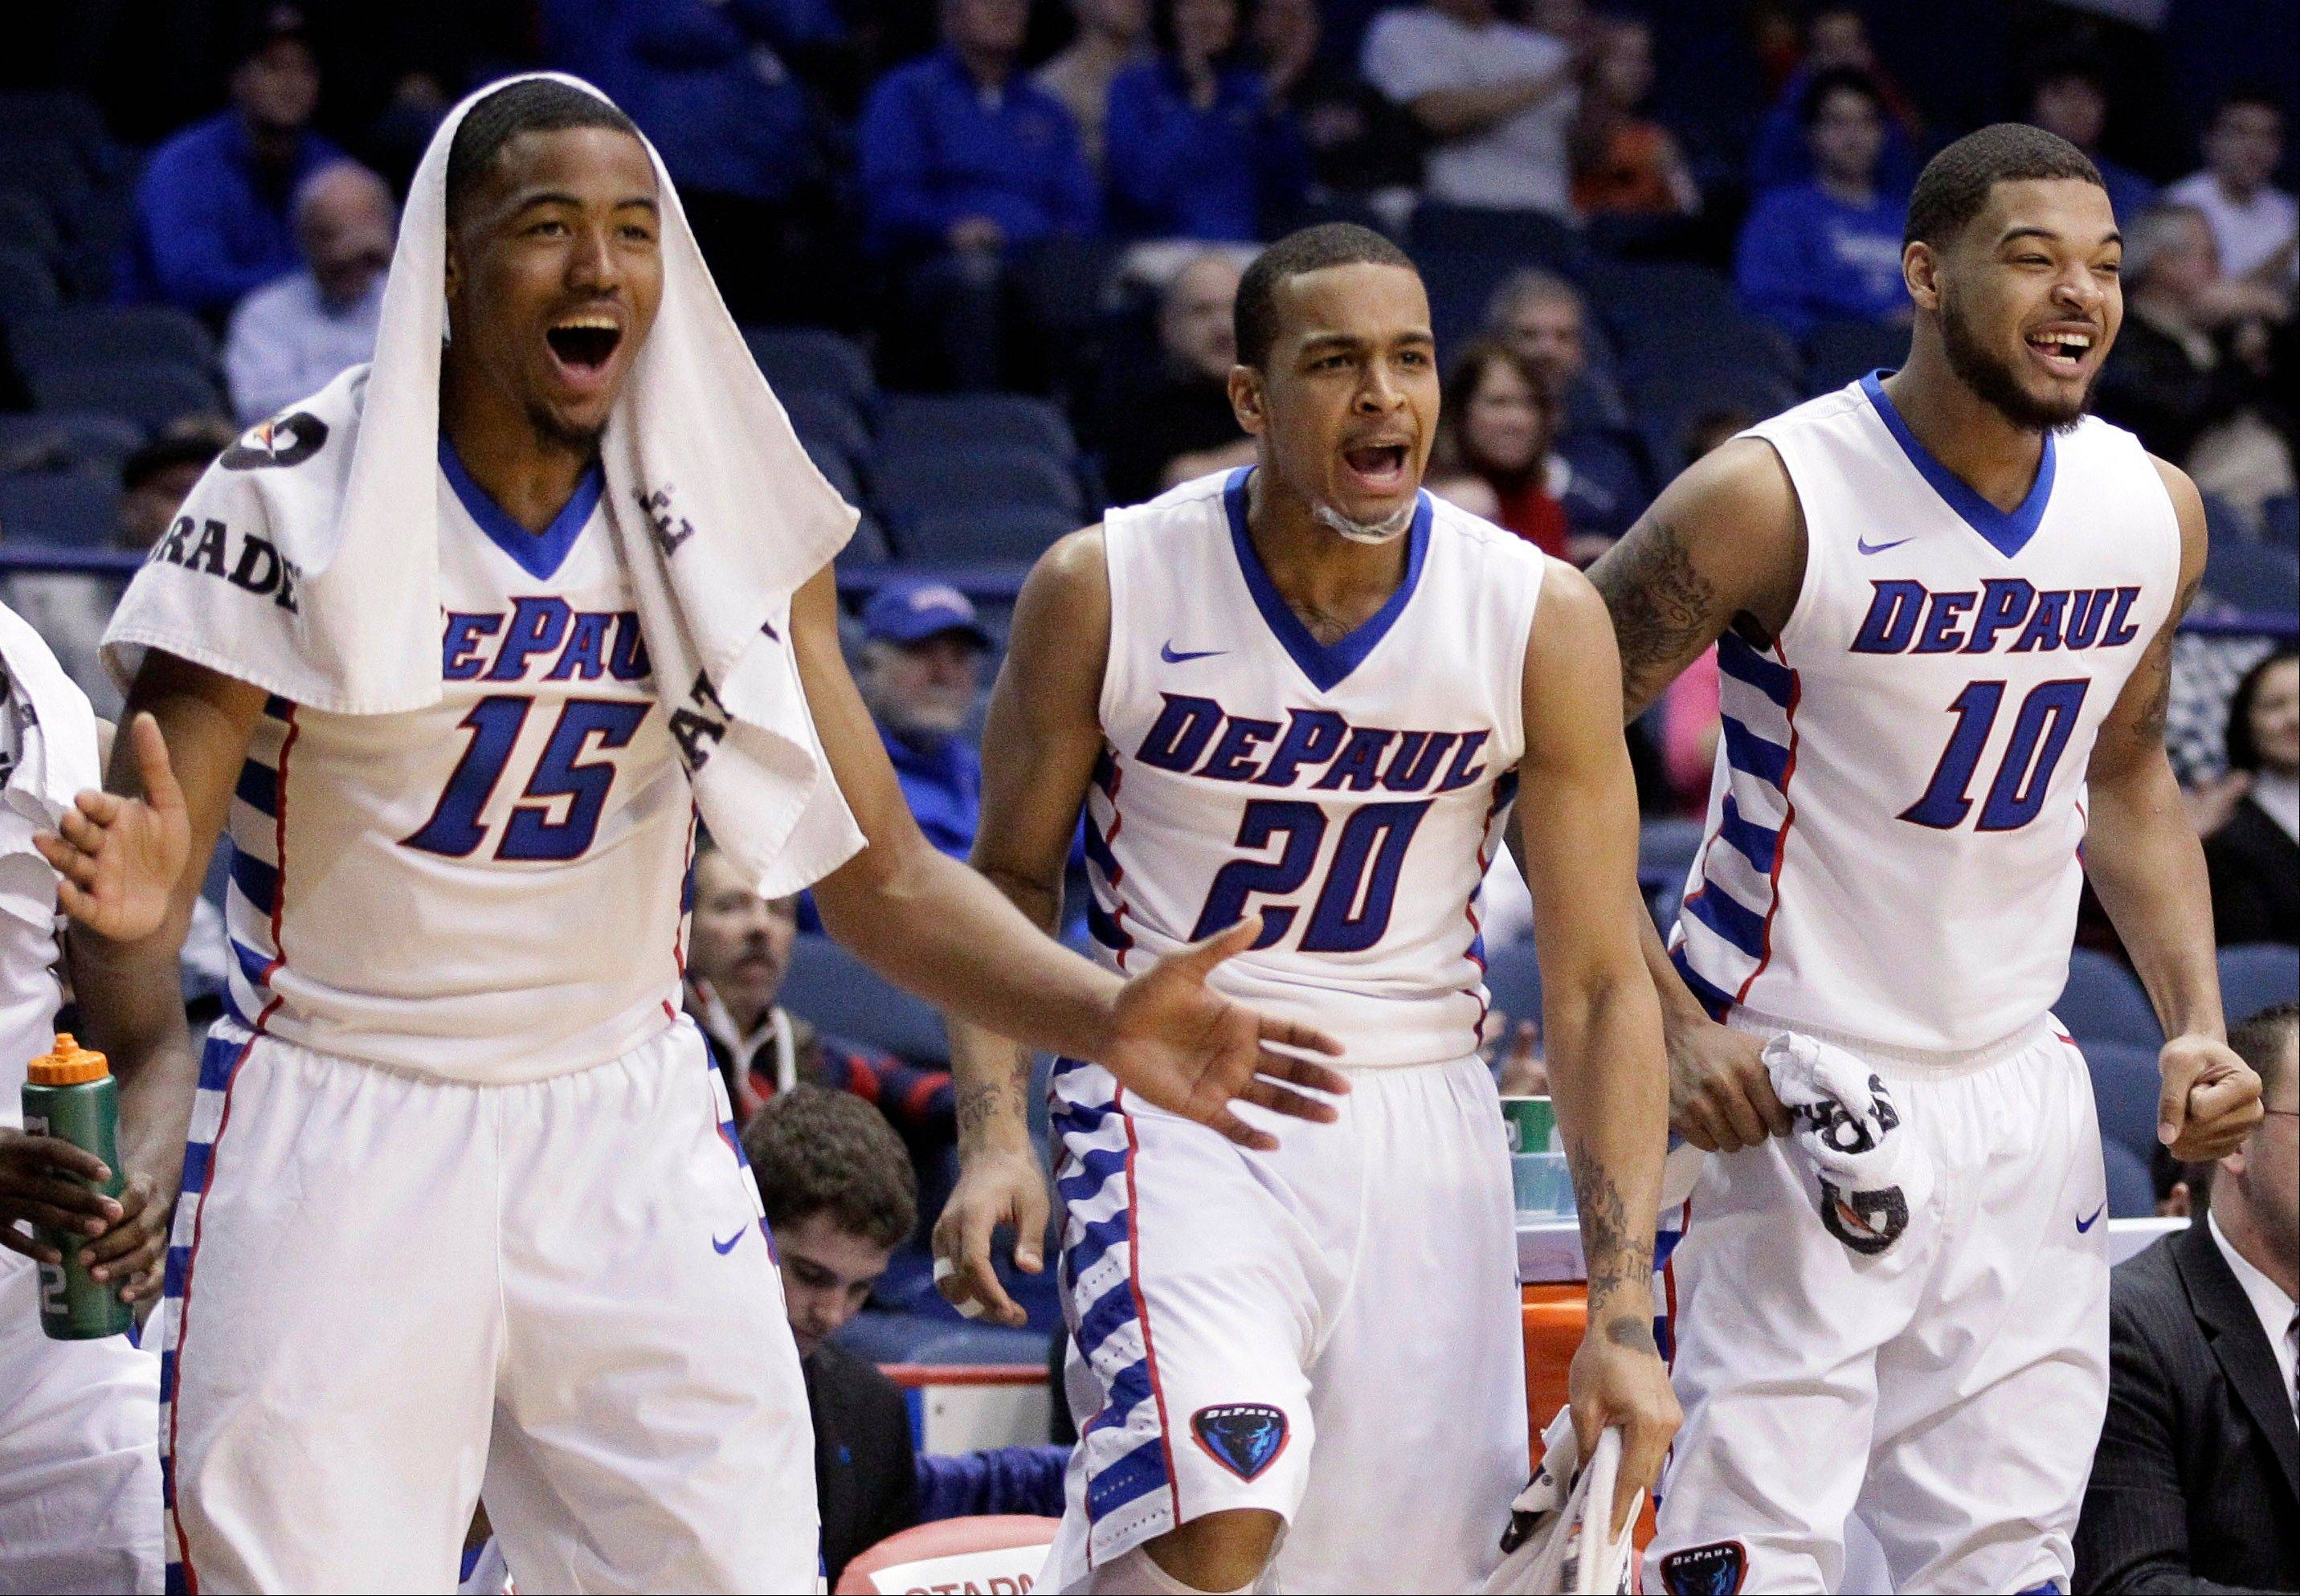 Is DePaul ready to jump the Big East ship? With the conference losing several key football and basketball powers to recent realignments, published reports say the university and six other Catholic schools are exploring their options, which could include forming their own league.